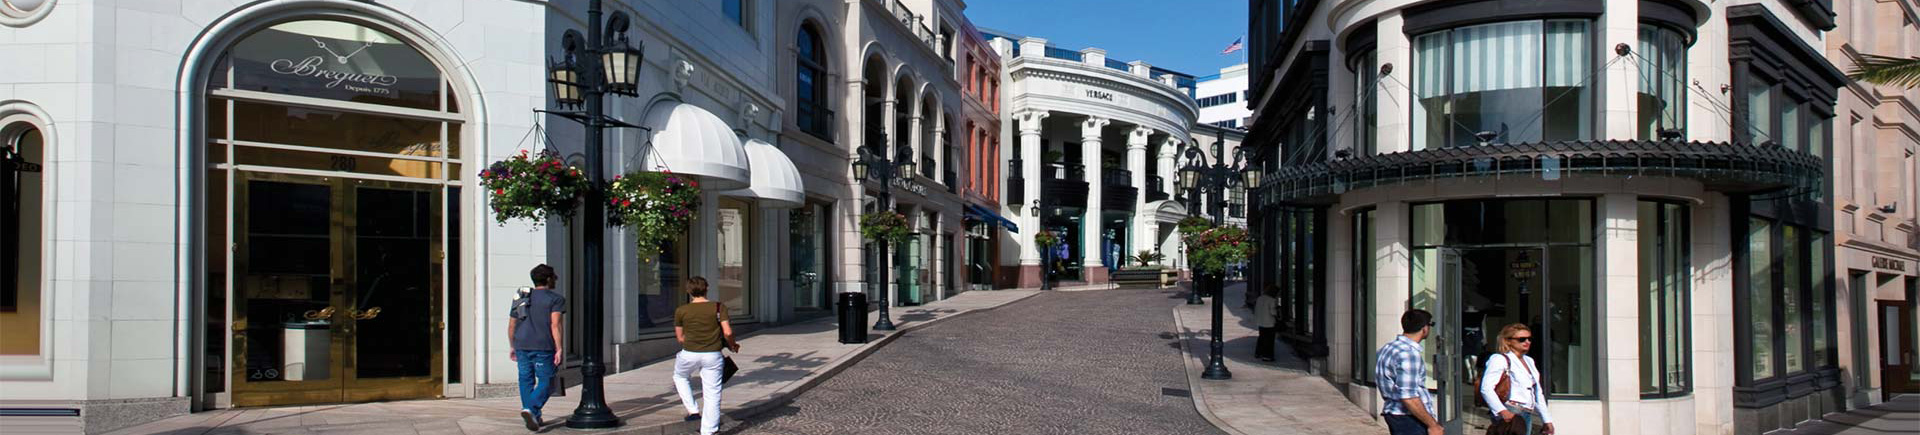 Hillcreste Apartments in Los Angeles, CA - Rodeo Drive